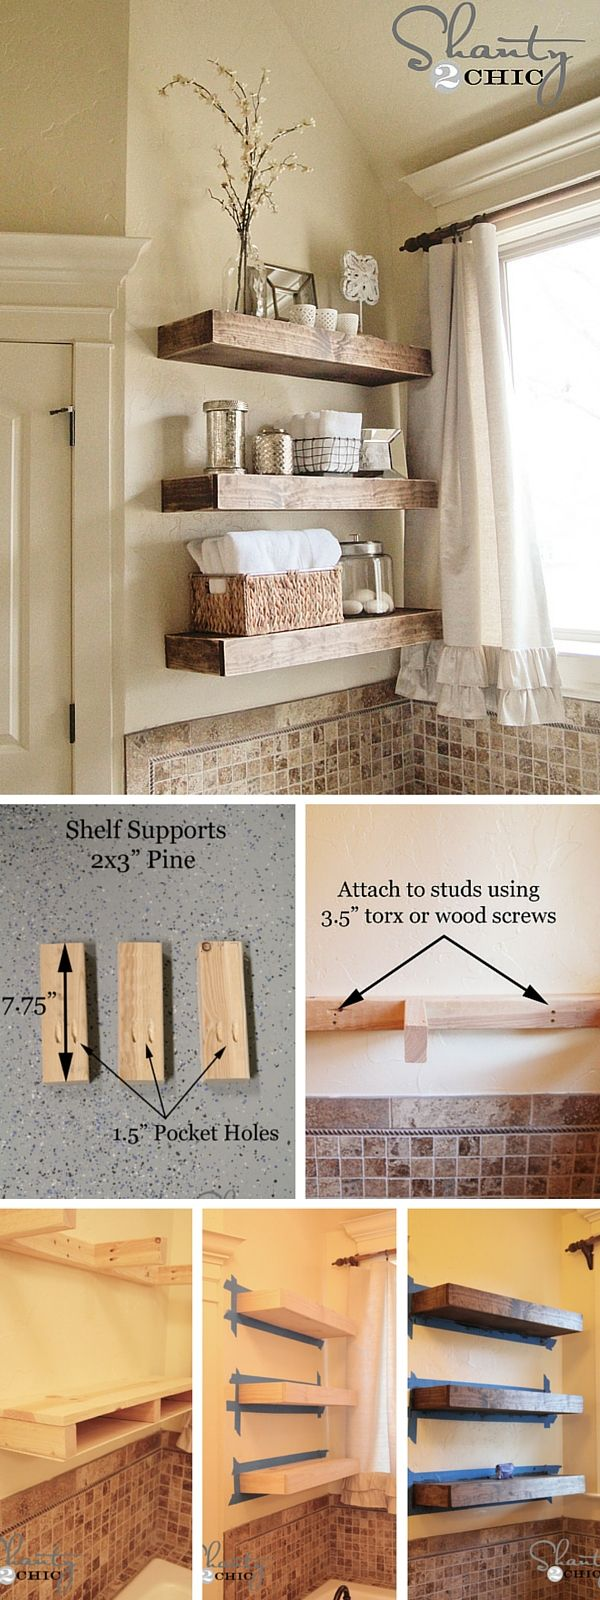 Check out the tutorial: #DIY Rustic Bathroom Shelves #crafts #homedecor